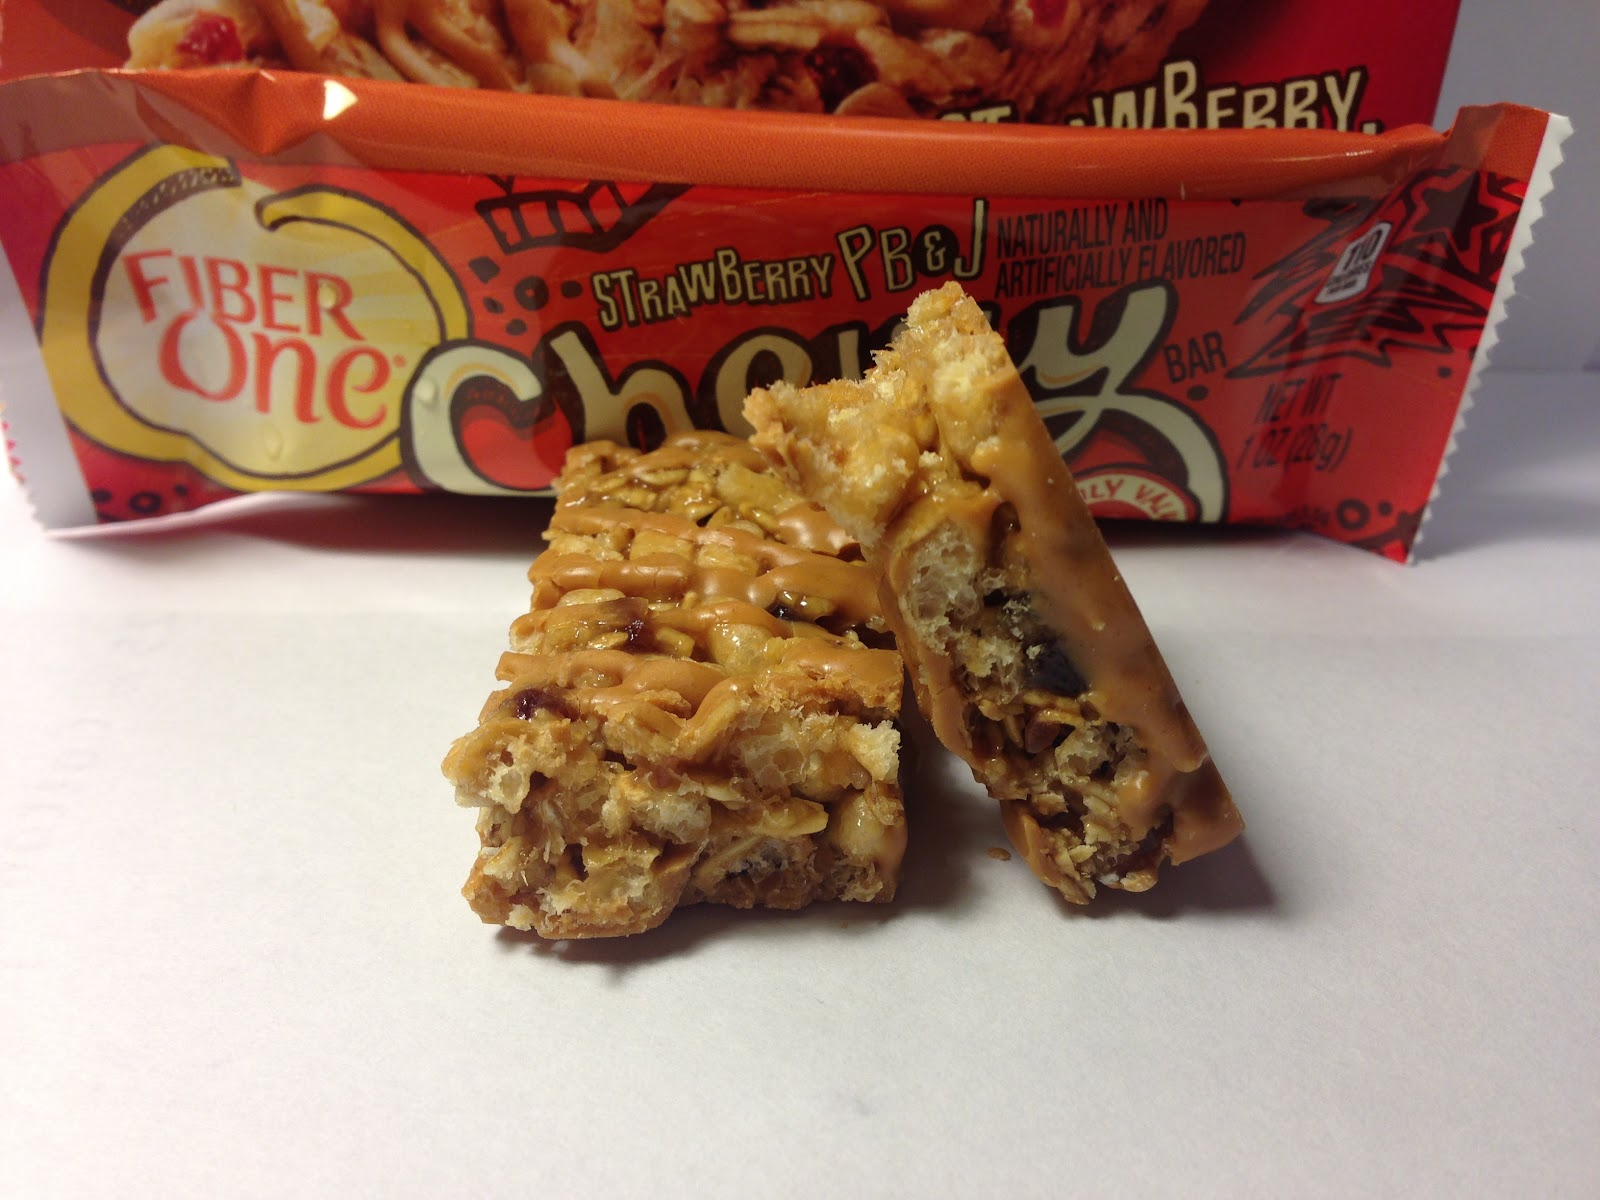 Crazy Food Dude: Review: Fiber One Strawberry PB&J Chewy Bar on